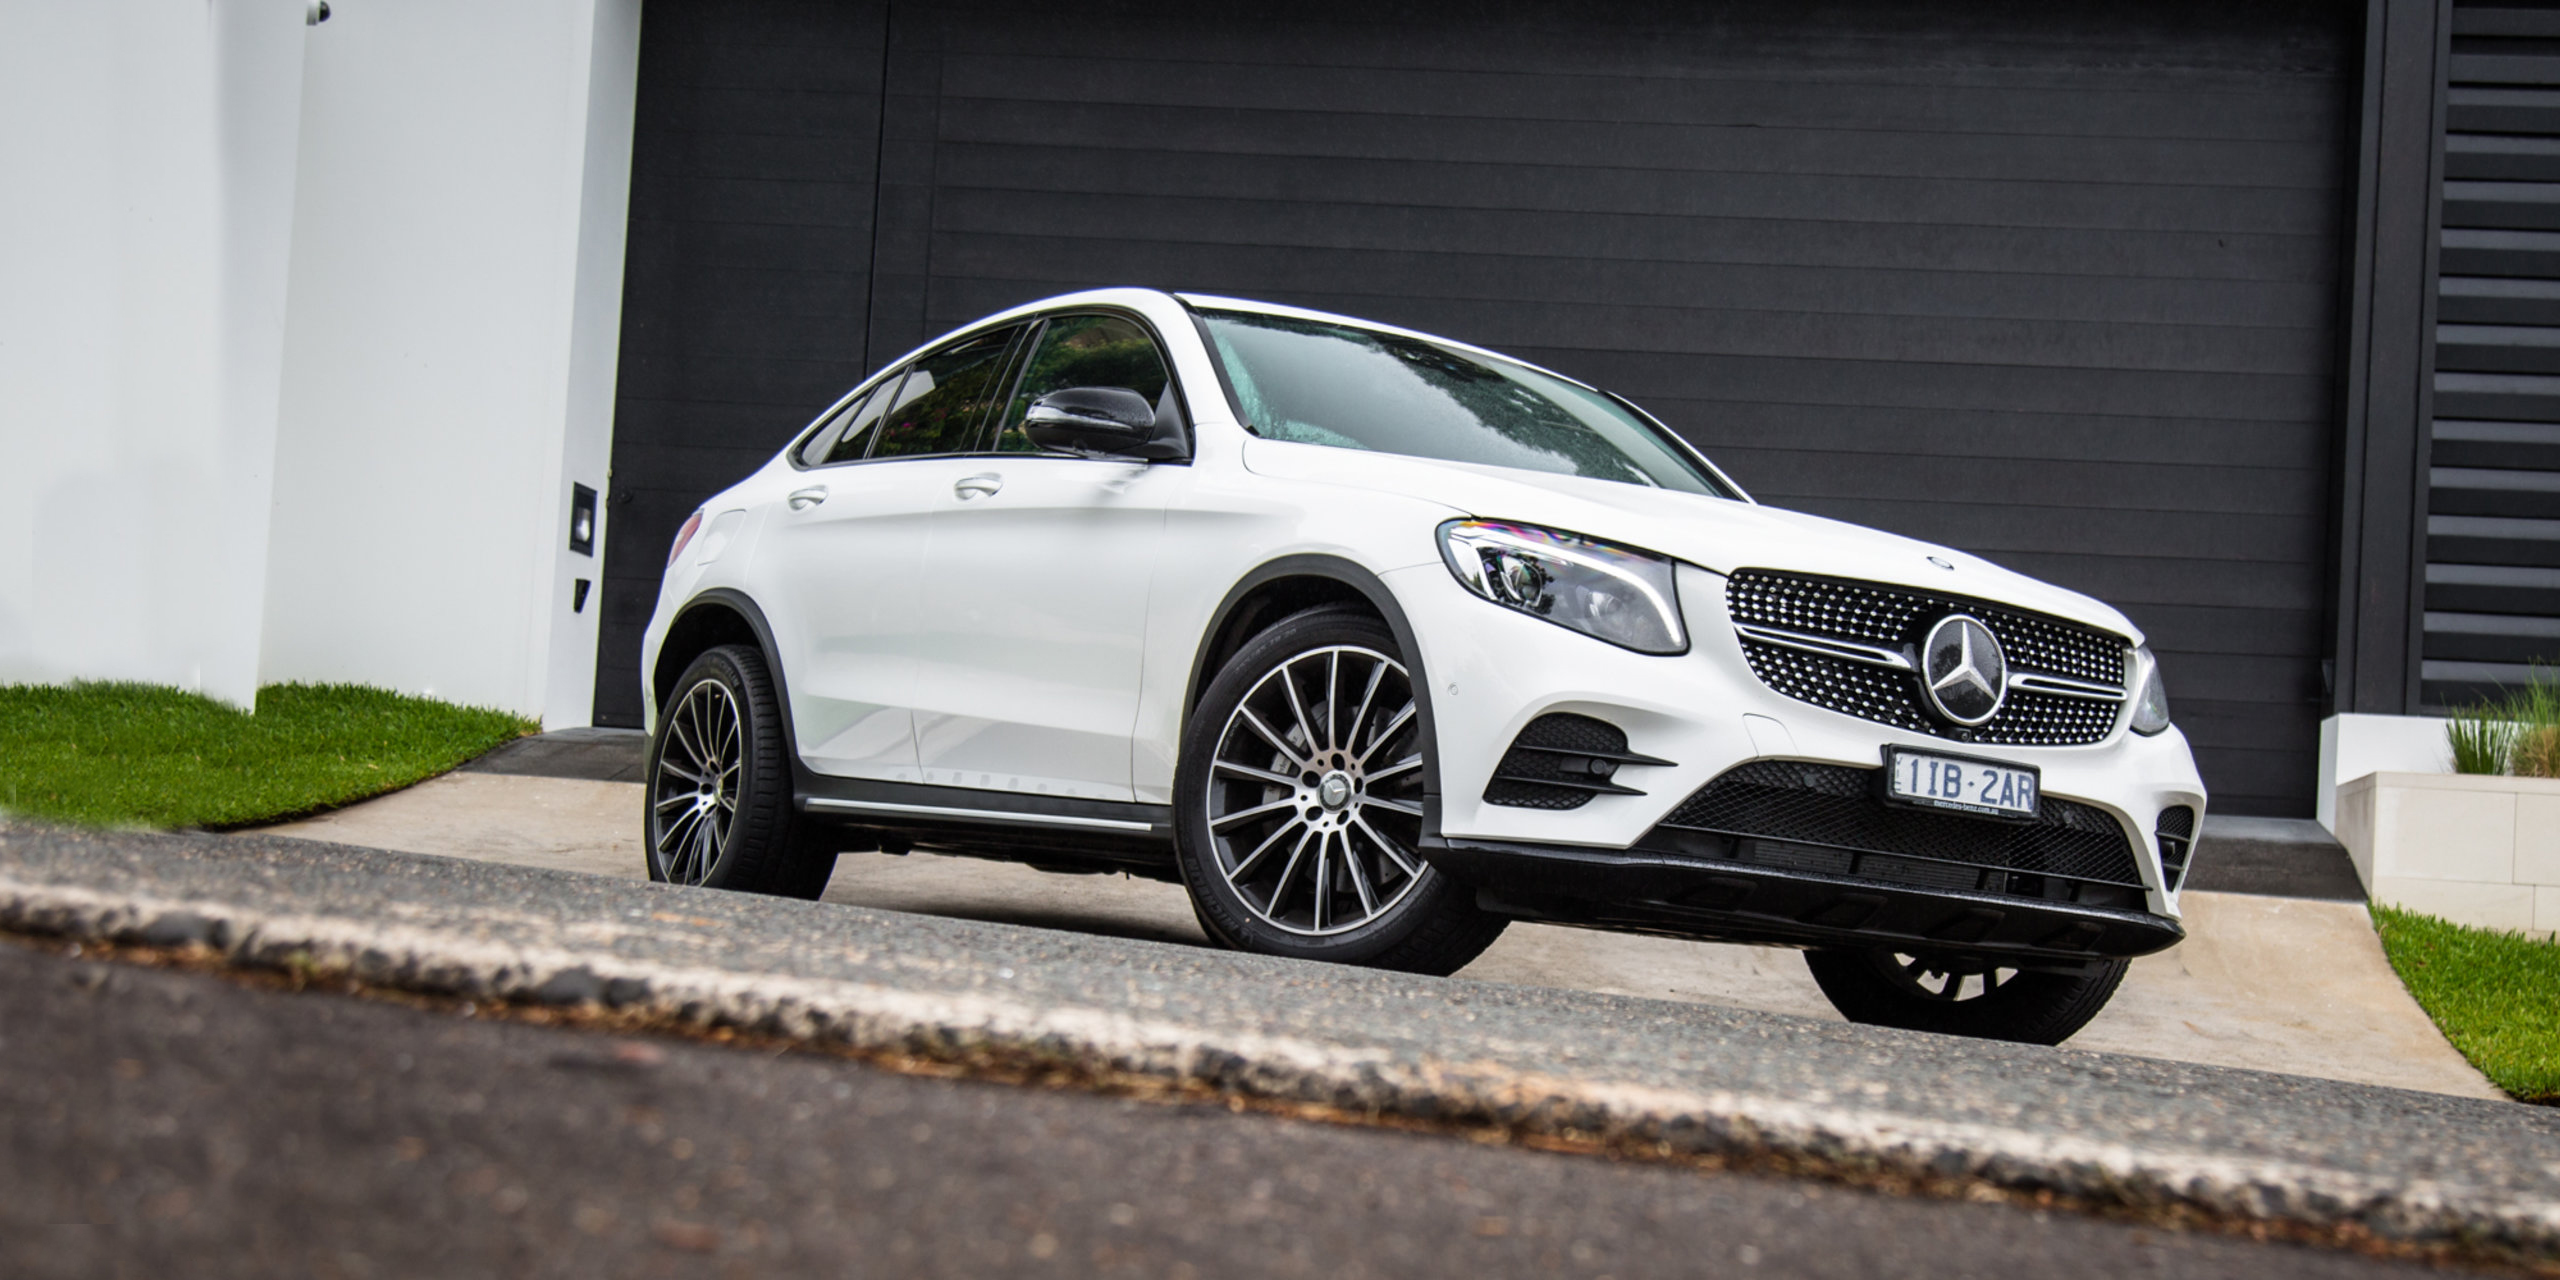 Glc Coupe Price >> 2017 Mercedes-Benz GLC250 Coupe review   CarAdvice